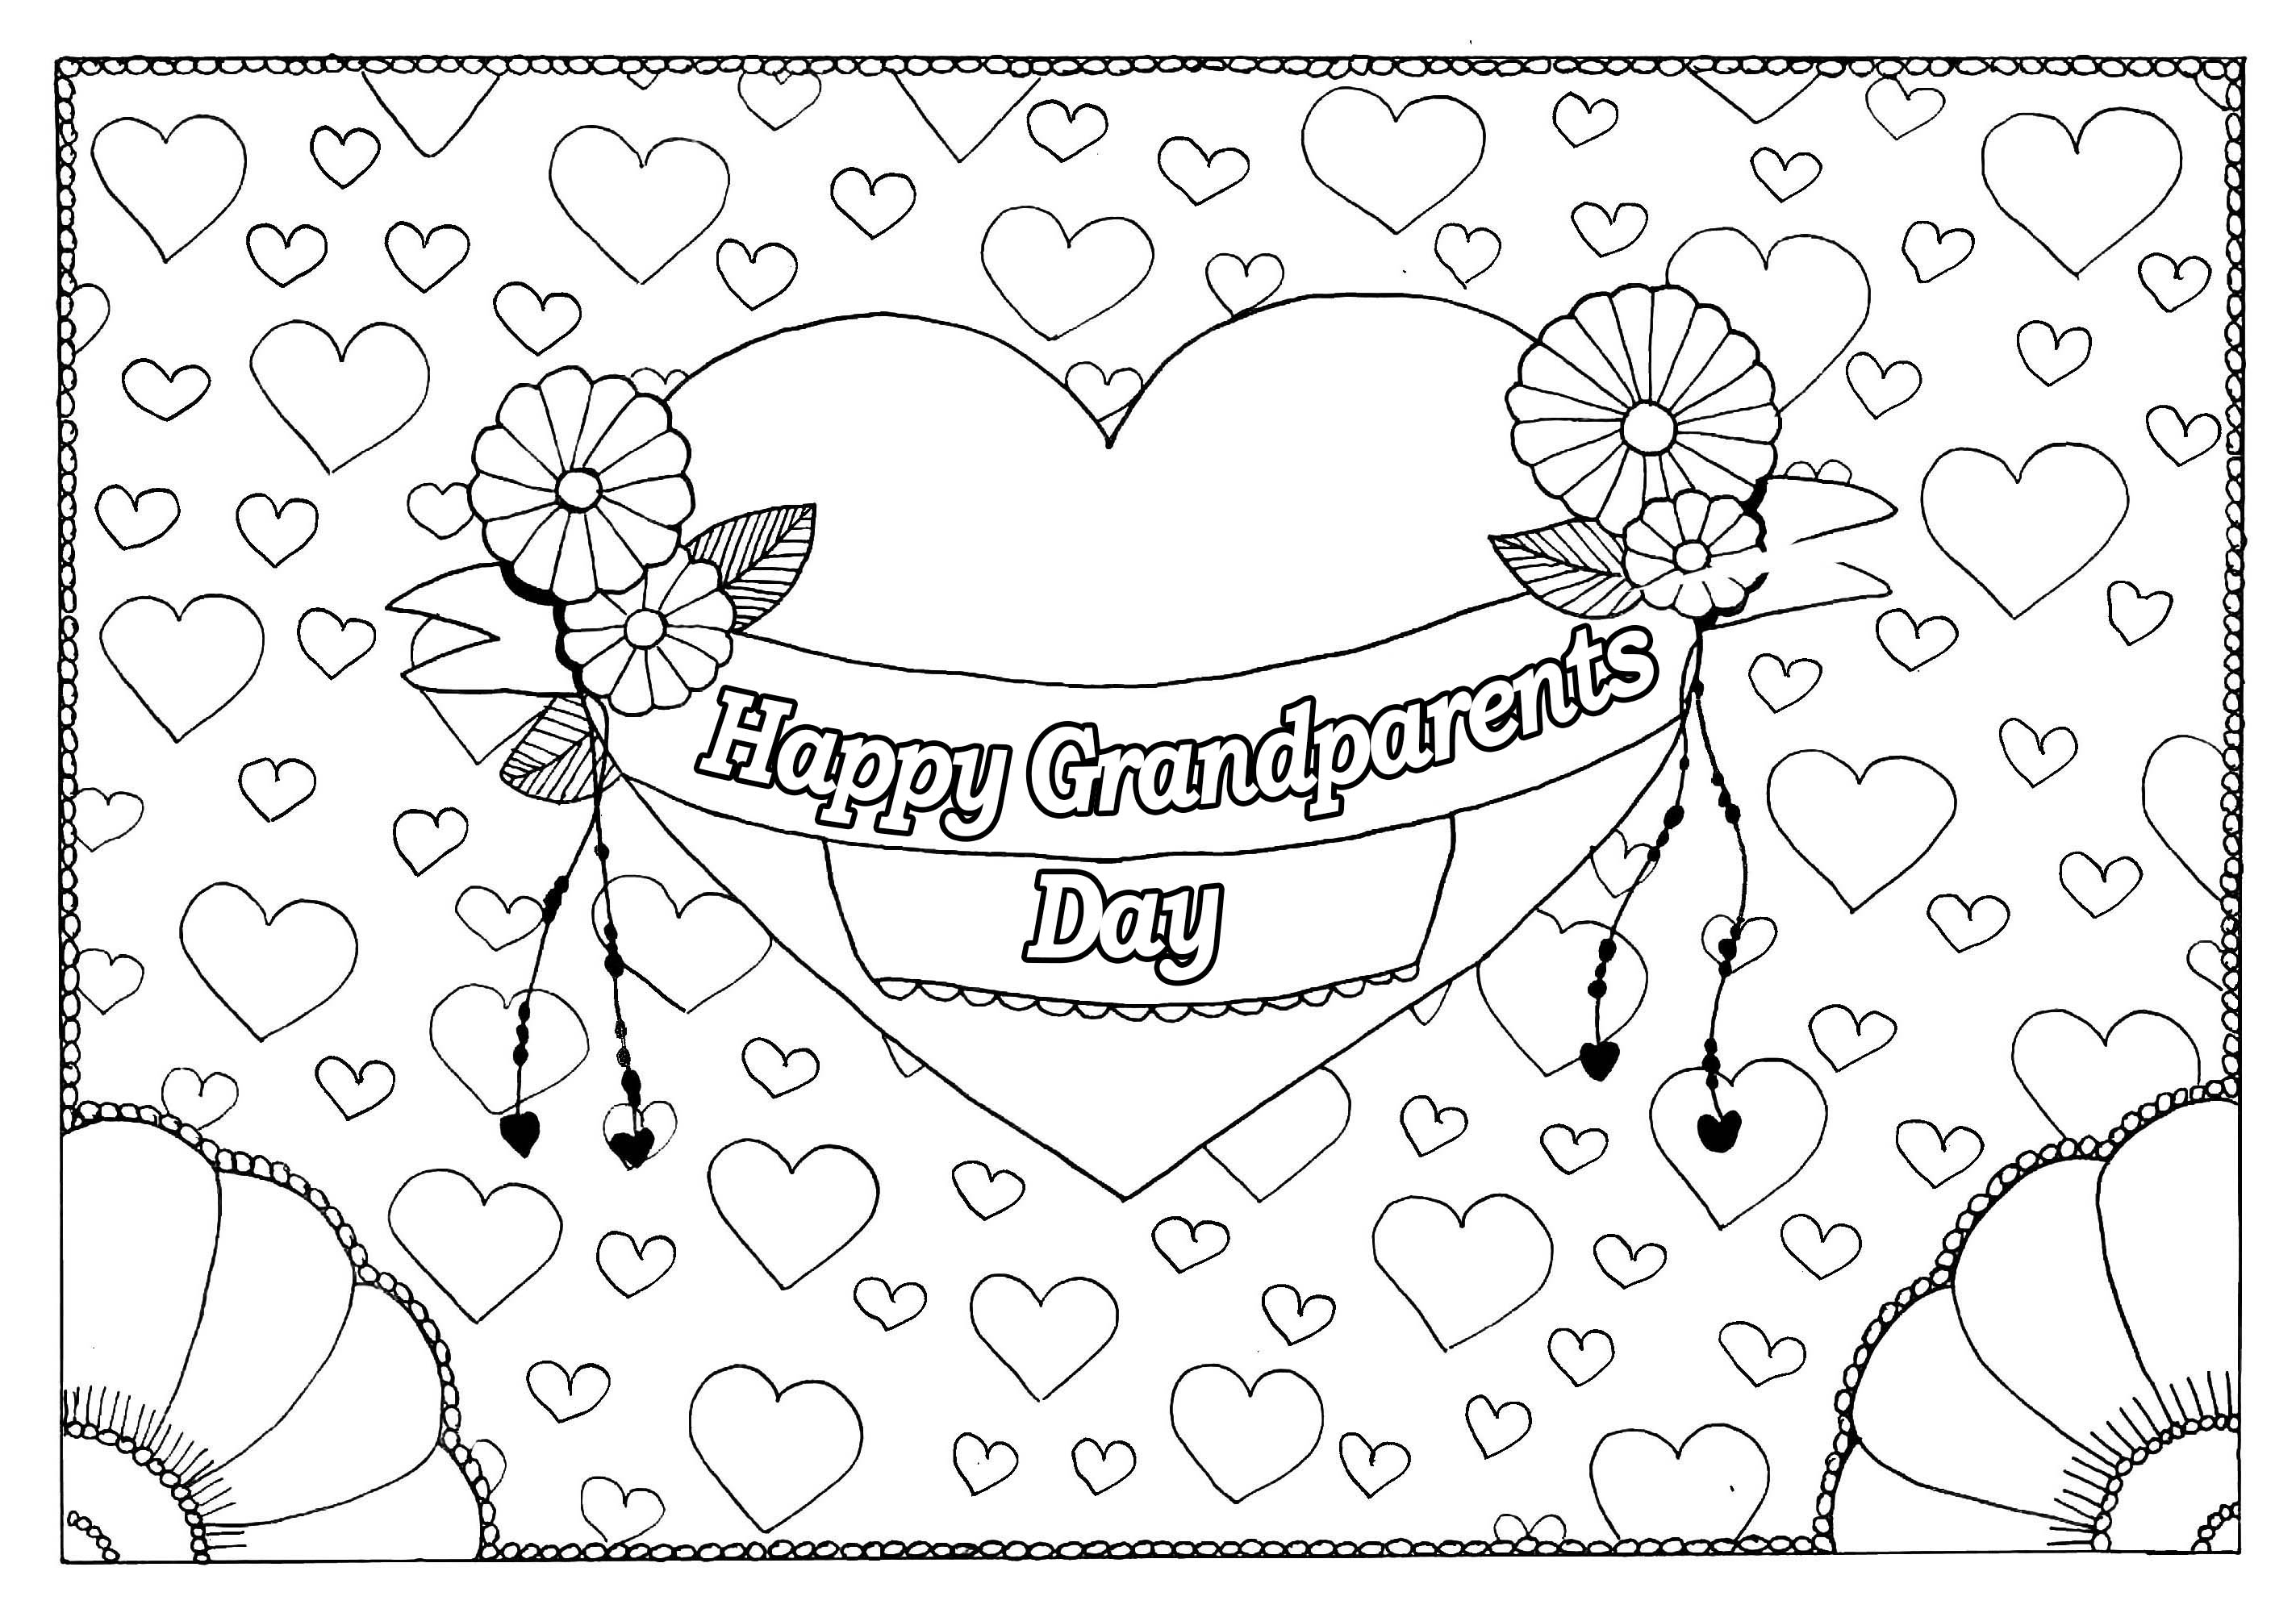 Coloring Pages for Grandparents Day  Collection 2q - Free For kids